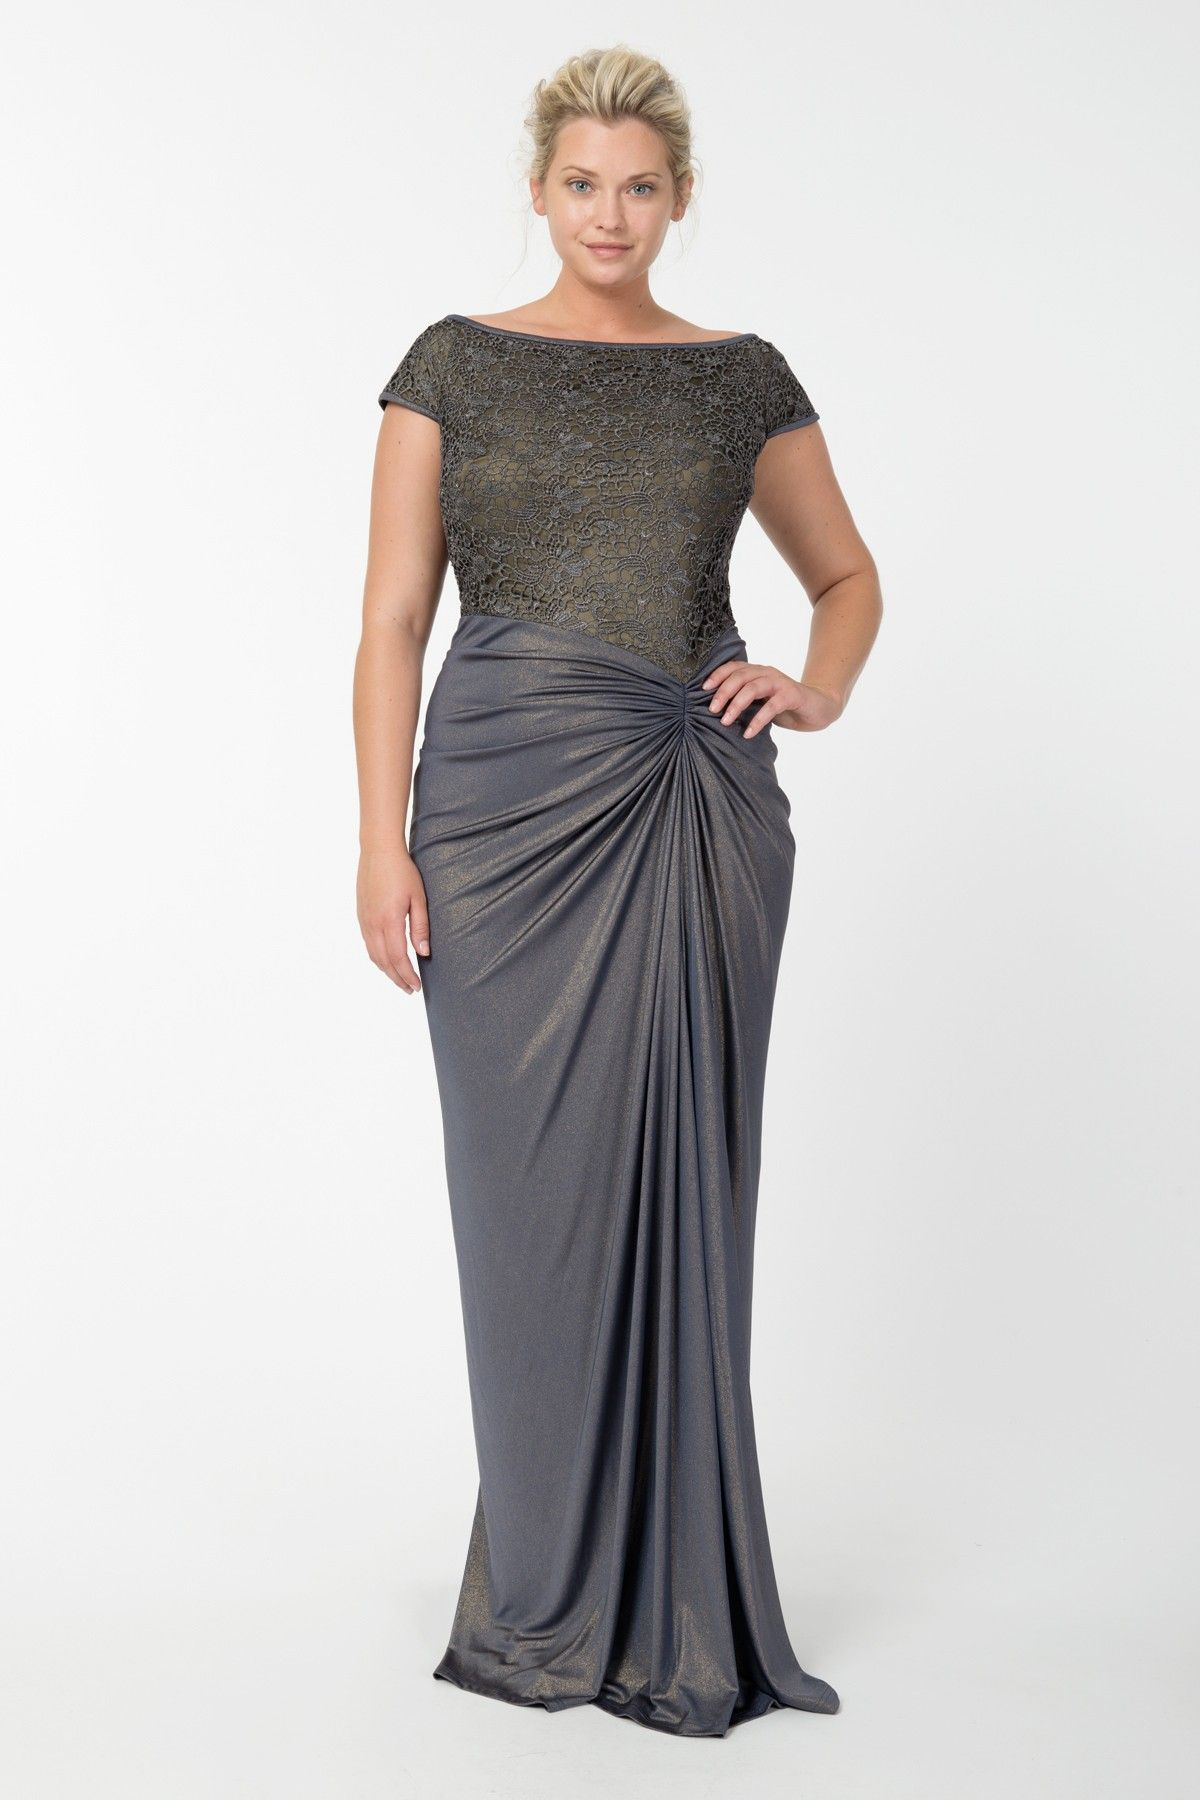 a53f38b4d6c0 20 Plus Size Evening Dresses to Look Like Queen